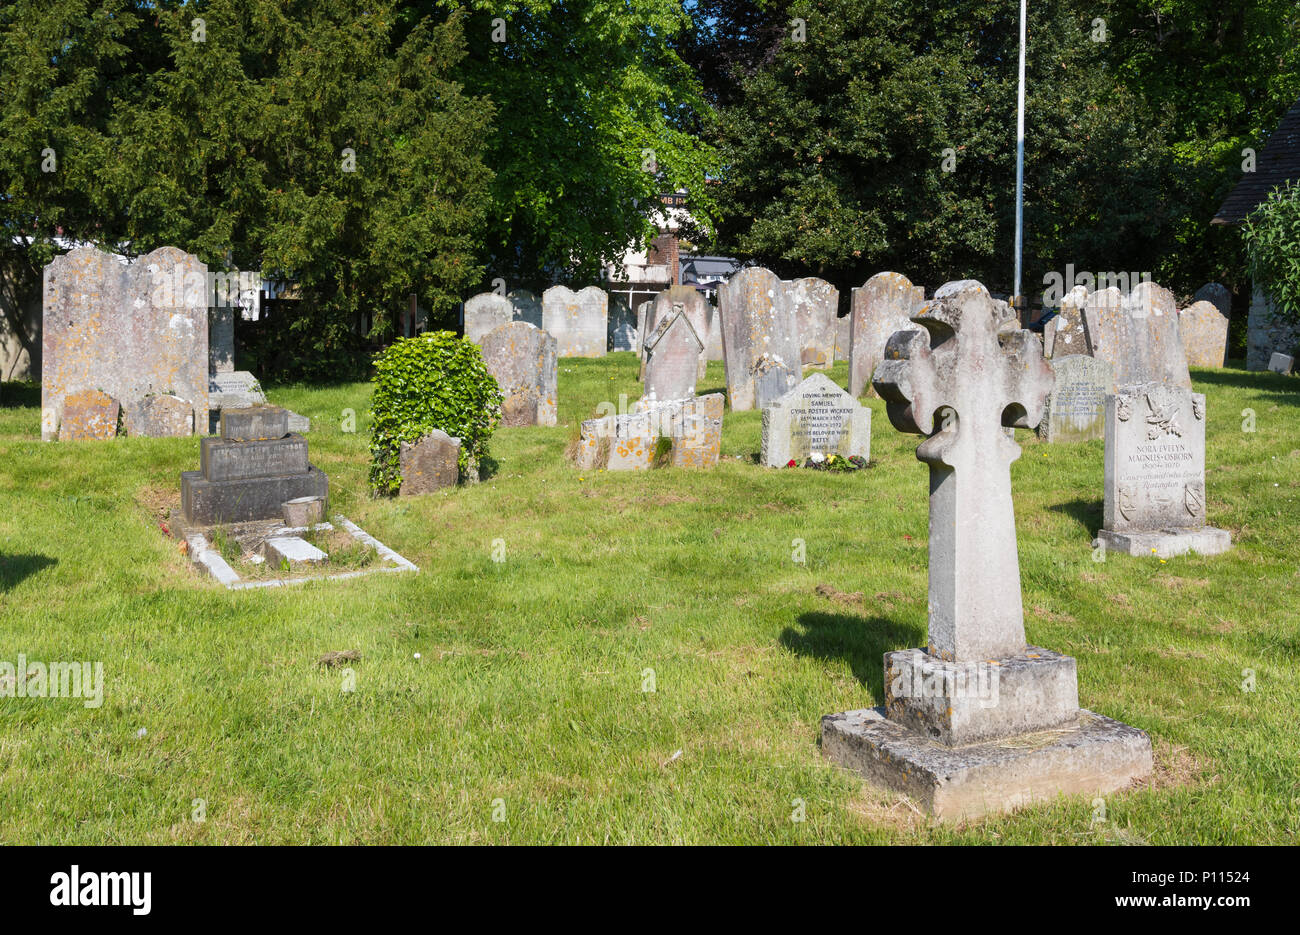 Small cemetery or graveyard with old gravestones on well kempt cut grass at the St Peter & St Paul Church in Rustington, West Sussex, England, UK. - Stock Image